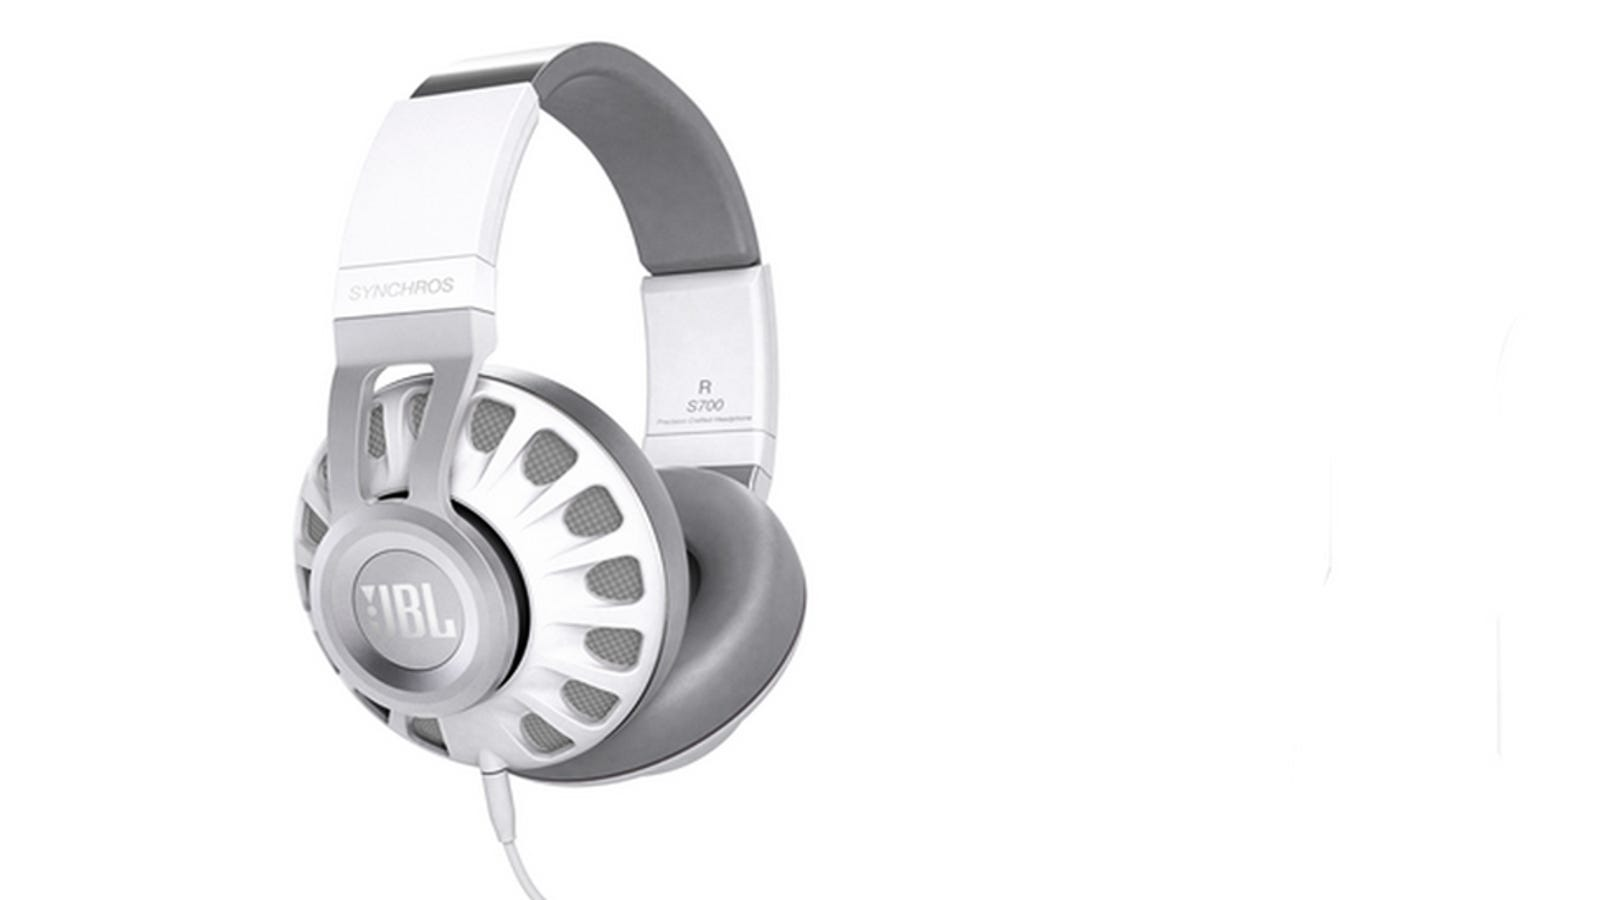 cheap earbuds under 10 dollars - JBL's New Headphones Use Pro DSP to Sound Like a Live Performance